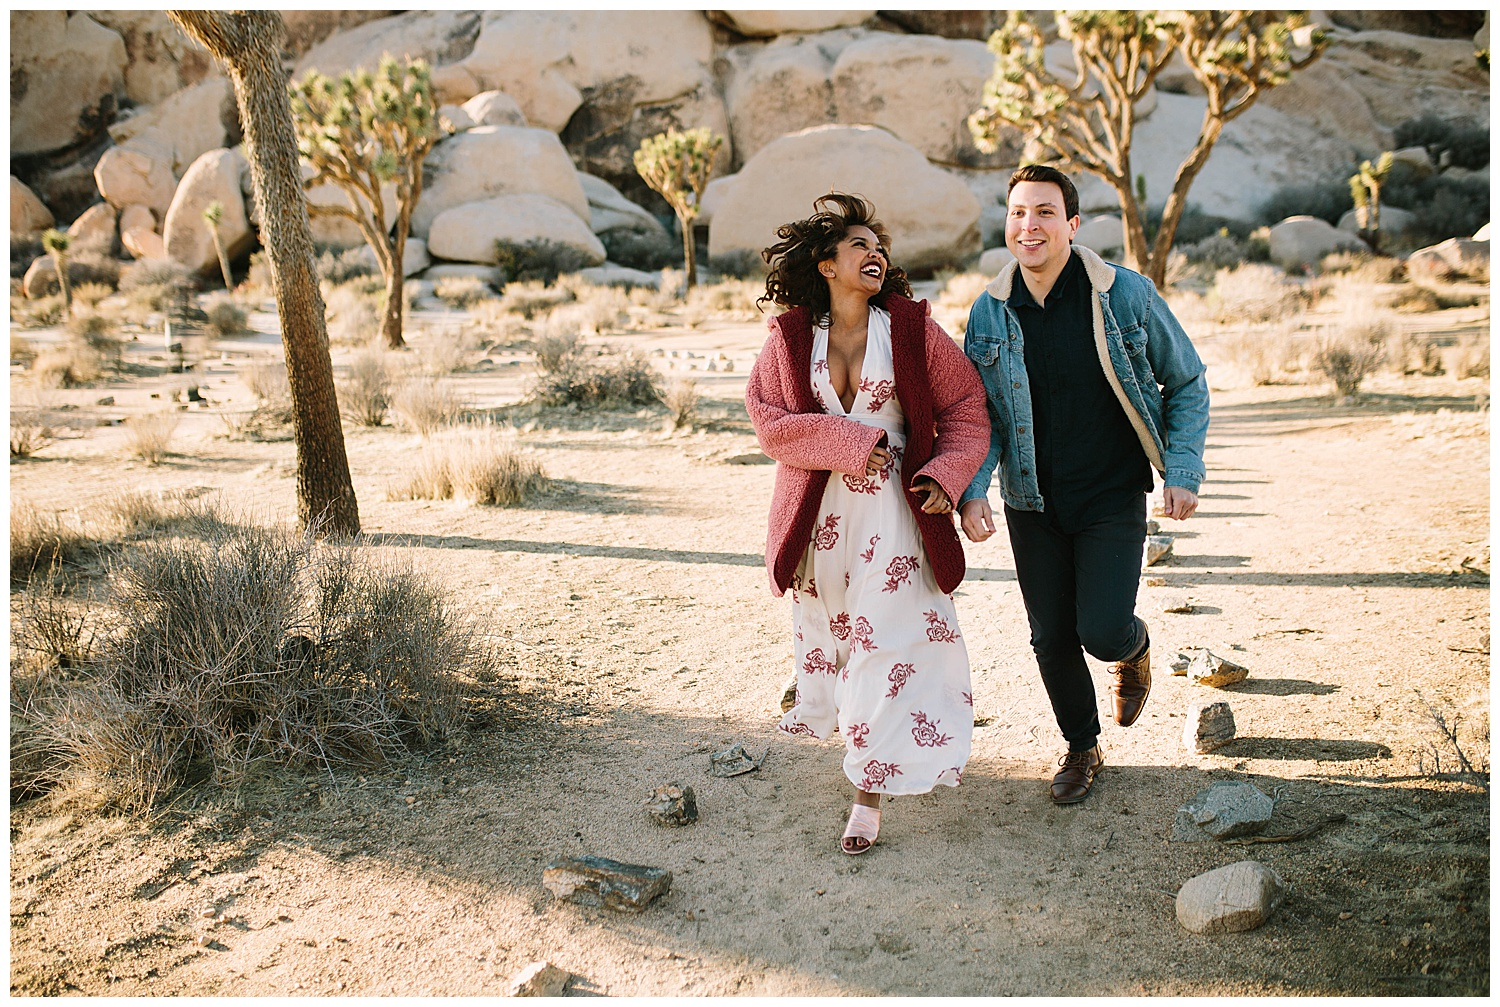 la.lifestyle.photography.session.engaged.malibu.joshuatree.kendralynnephotography-8.jpg